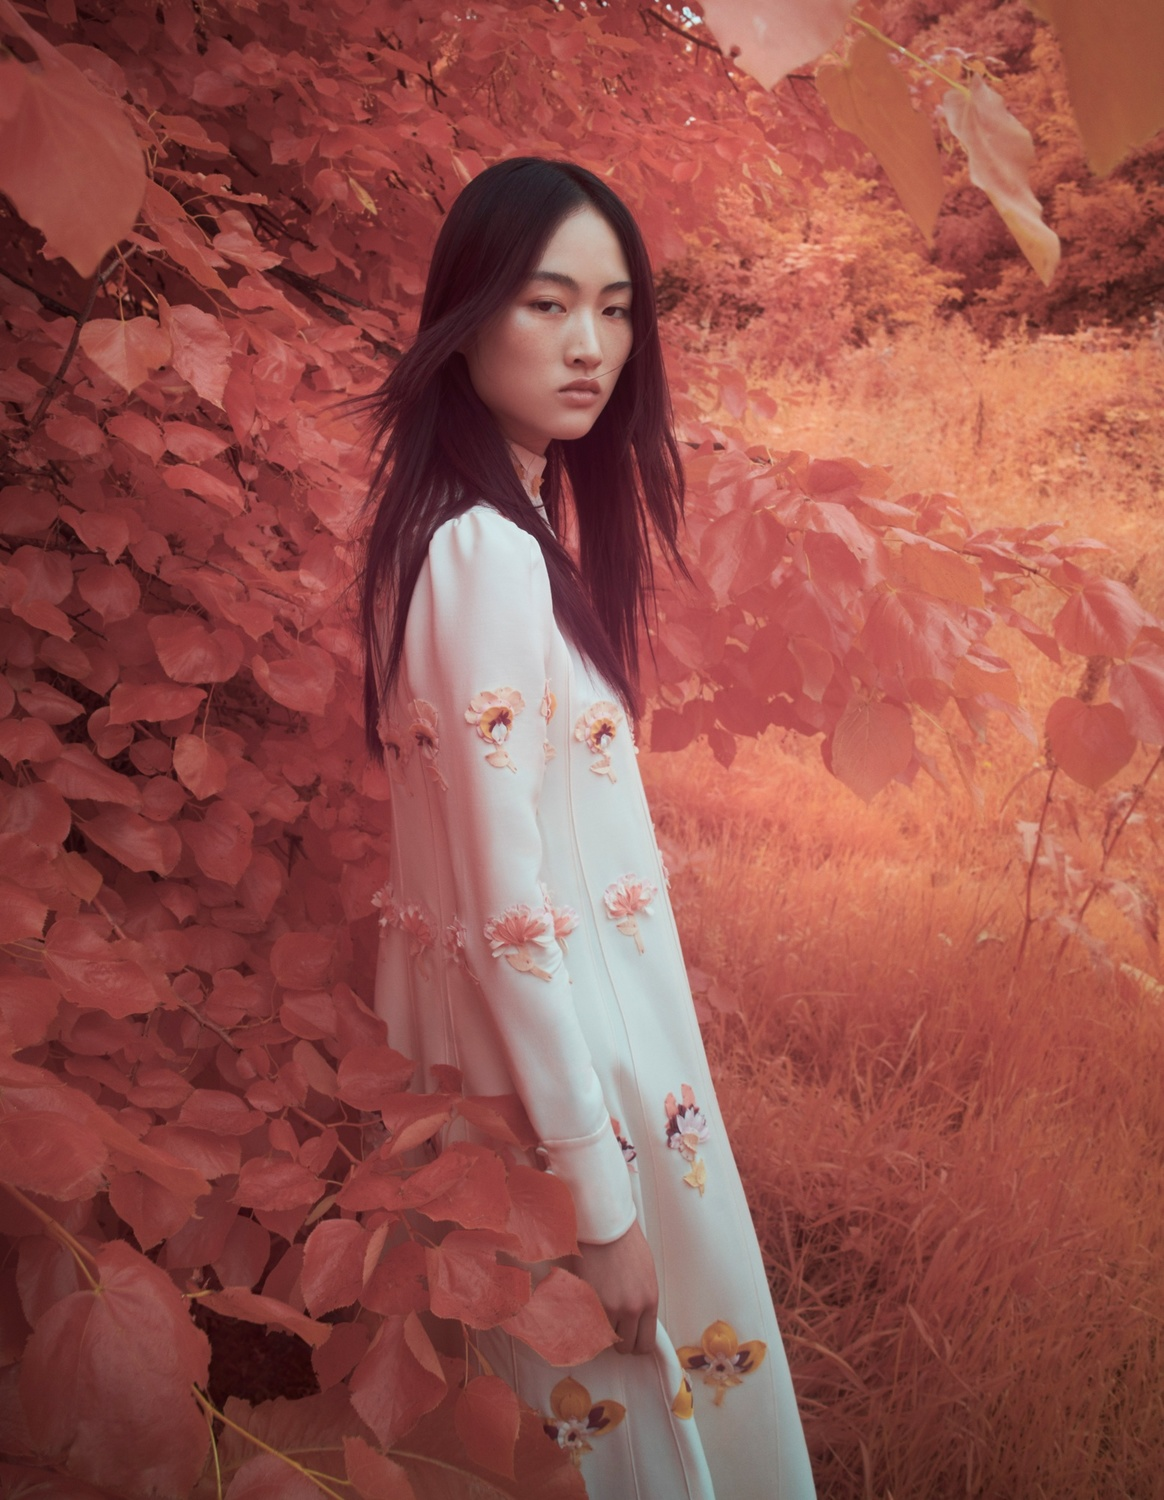 Jing Wen by Solve Sundsbo for Vogue China October 2017  (1).jpg